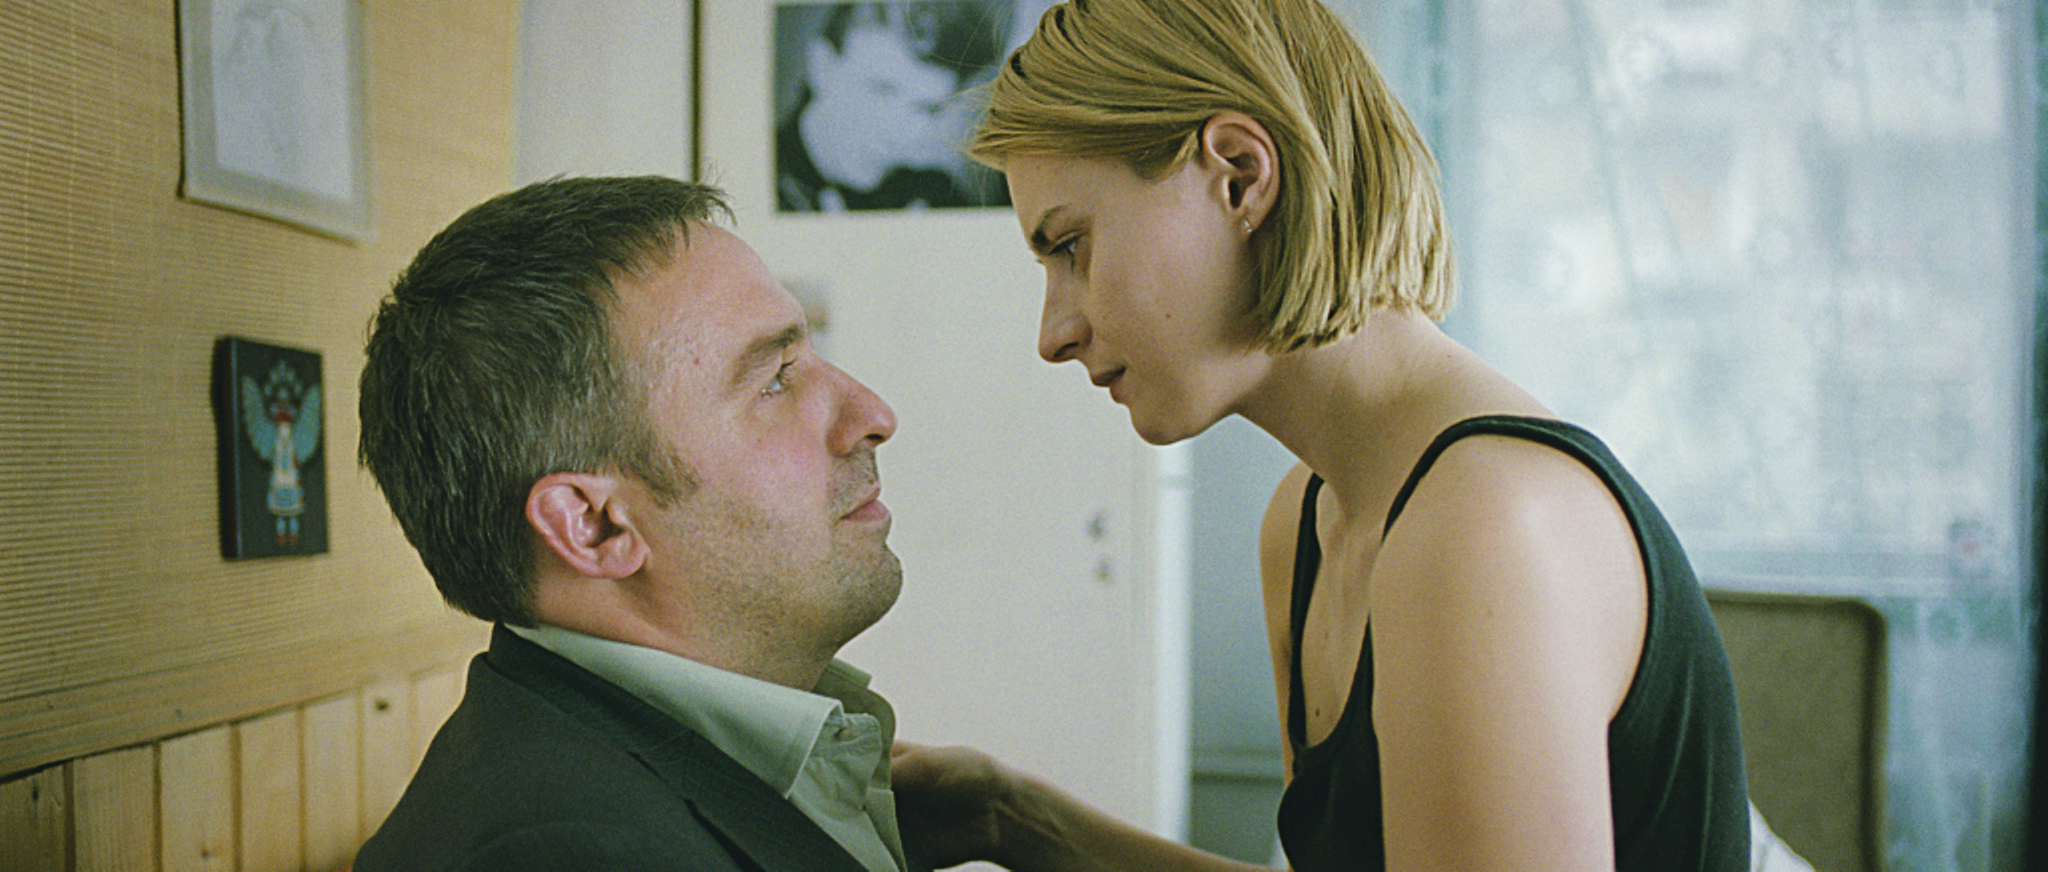 Film review: Tuesday, After Christmas (MFF 2011) | David Ashley's blog